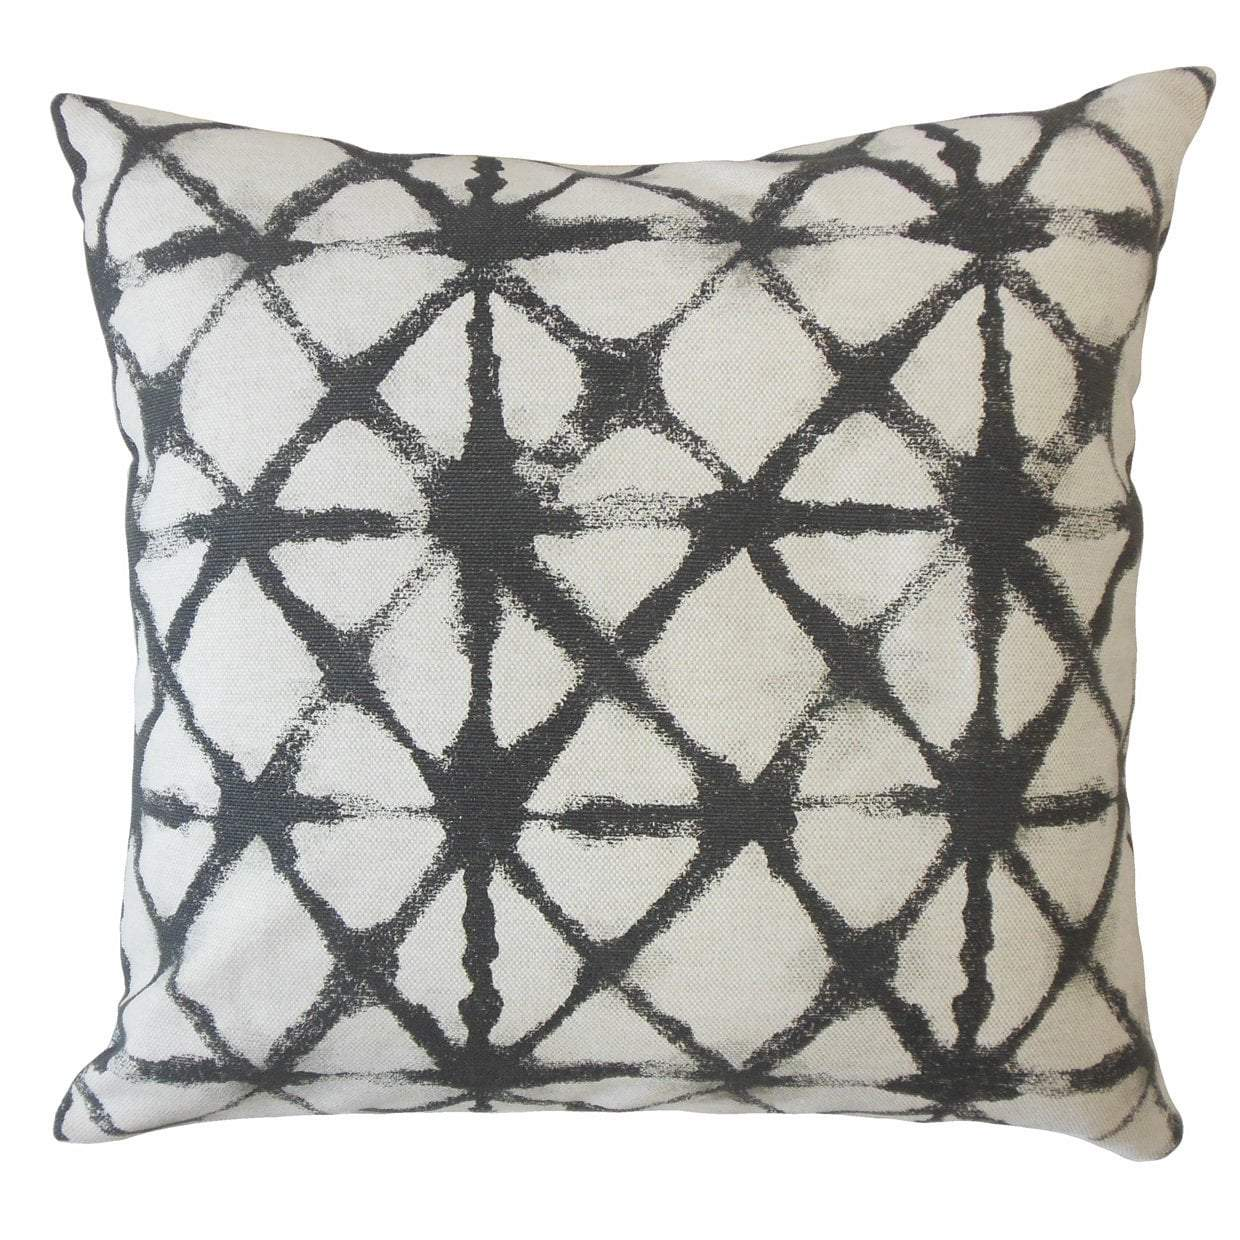 Lopez Throw Pillow Cover